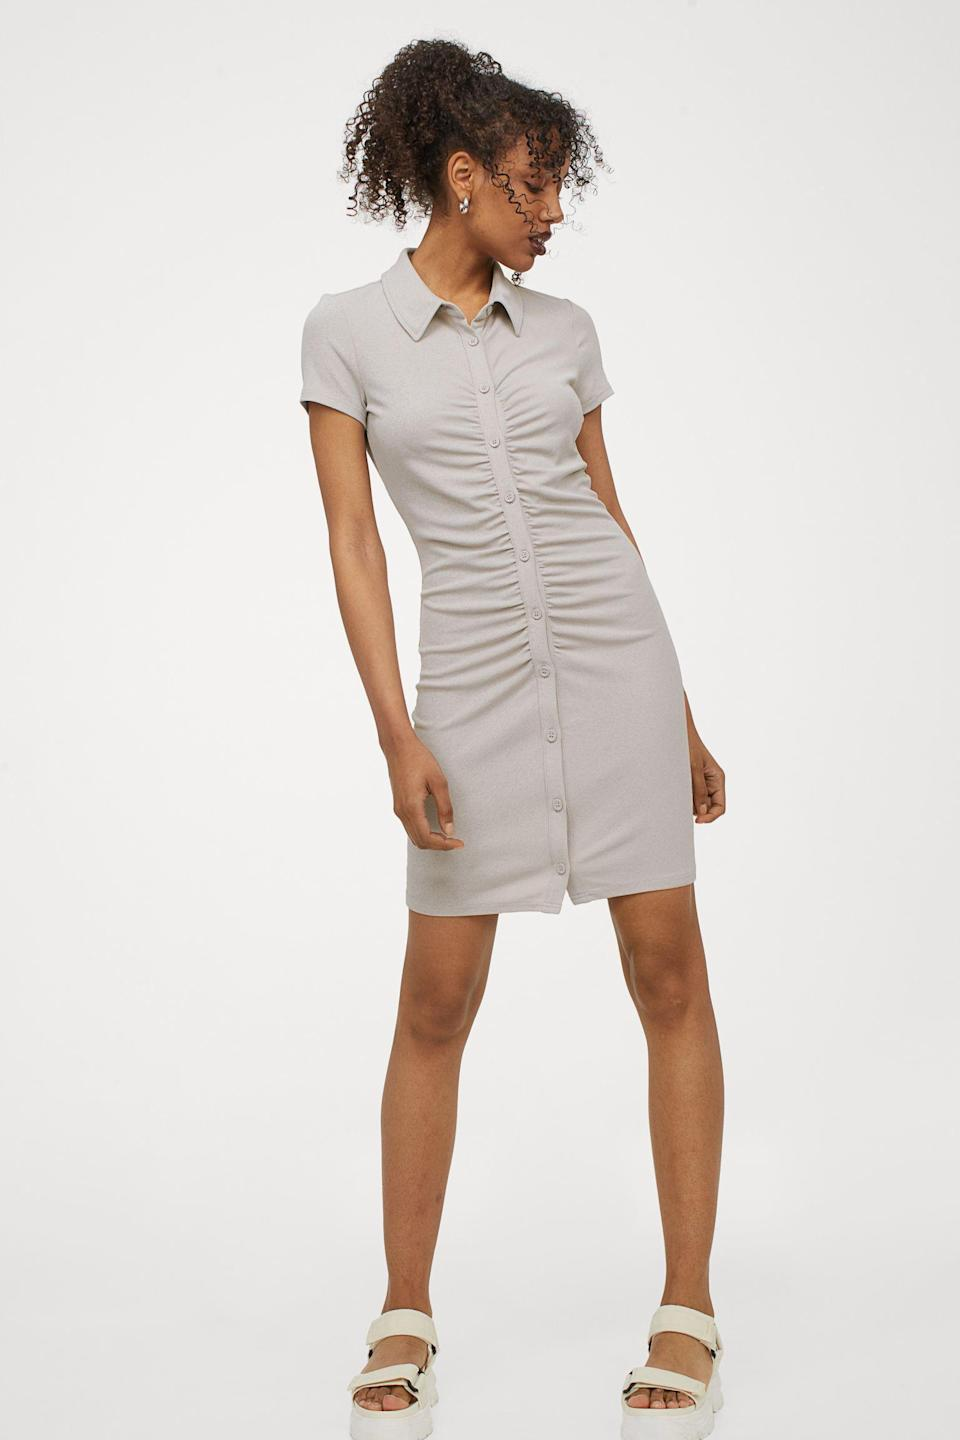 """<br><br><strong>H&M</strong> Button-front Dress, $, available at <a href=""""https://go.skimresources.com/?id=30283X879131&url=https%3A%2F%2Fwww2.hm.com%2Fen_us%2Fproductpage.0979571005.html"""" rel=""""nofollow noopener"""" target=""""_blank"""" data-ylk=""""slk:H&M"""" class=""""link rapid-noclick-resp"""">H&M</a>"""